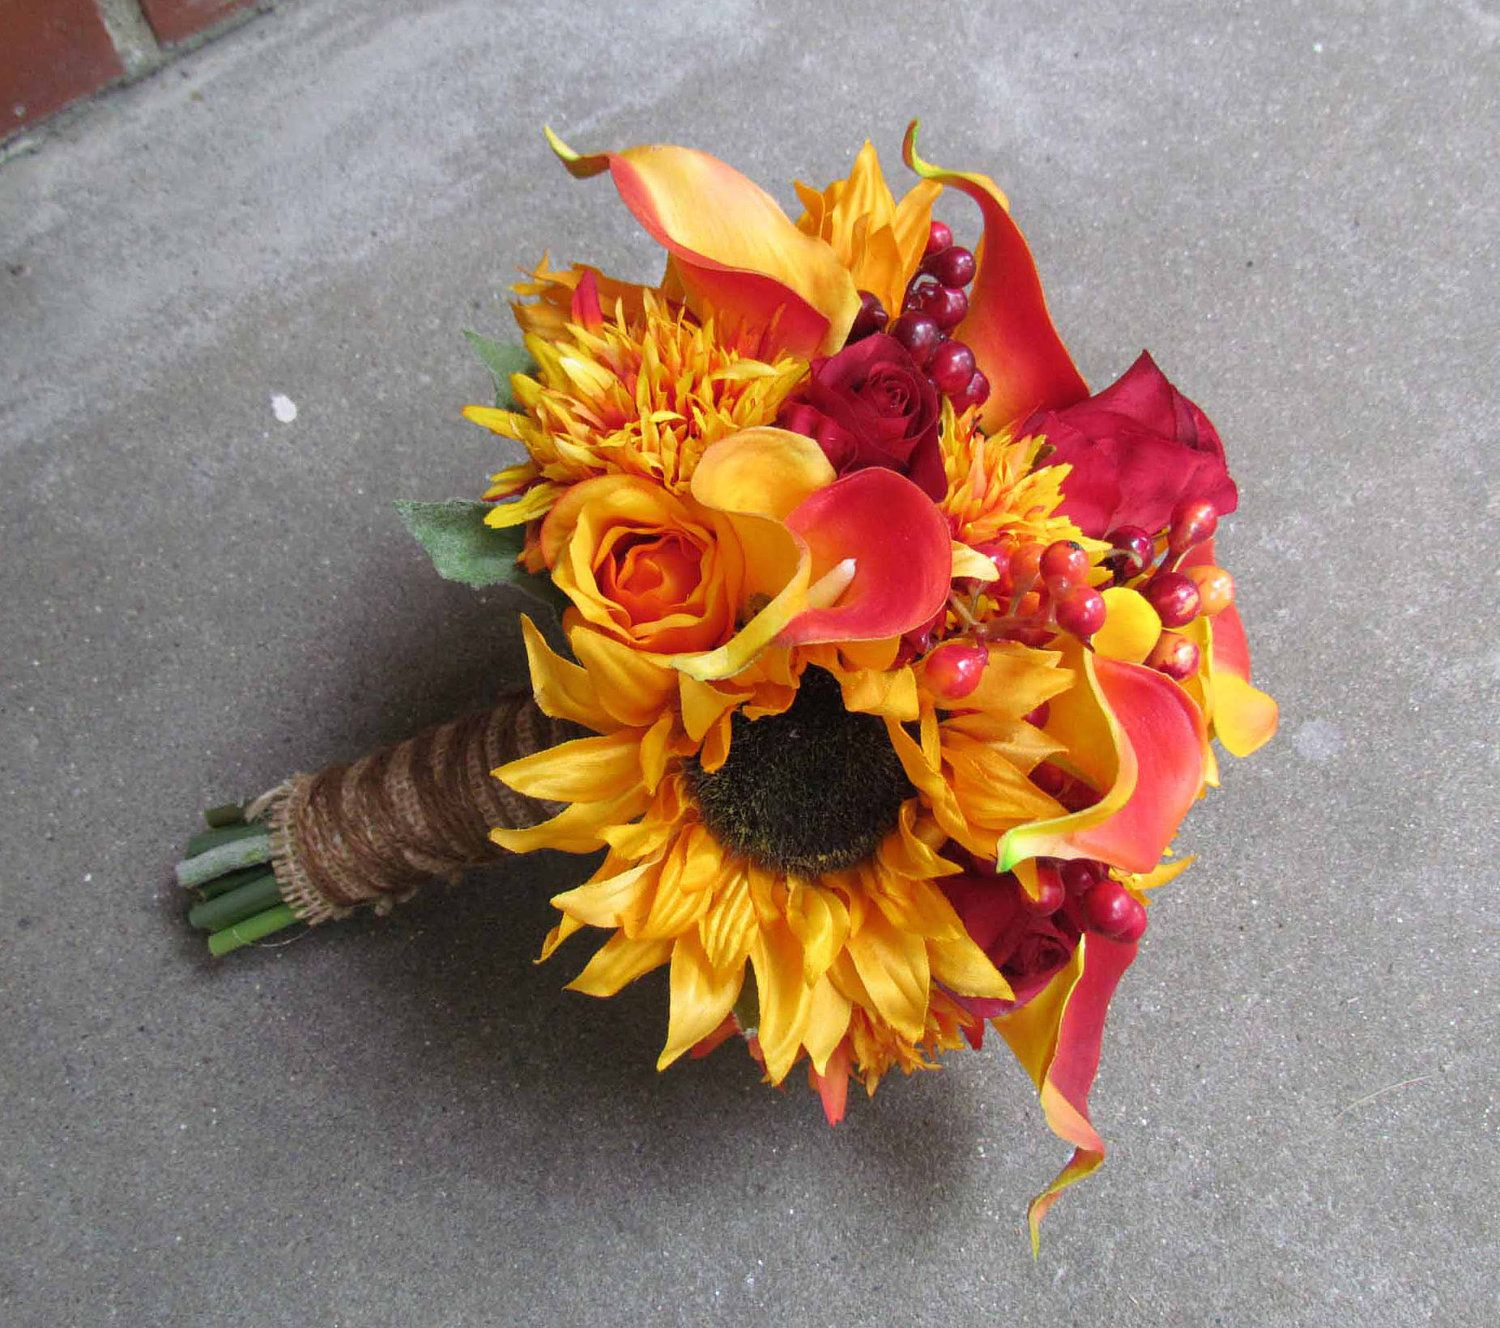 Yellow Wedding Flowers Ideas: Red Rose & Yellow Sunflower Bridal Bouquet...Ready To Ship